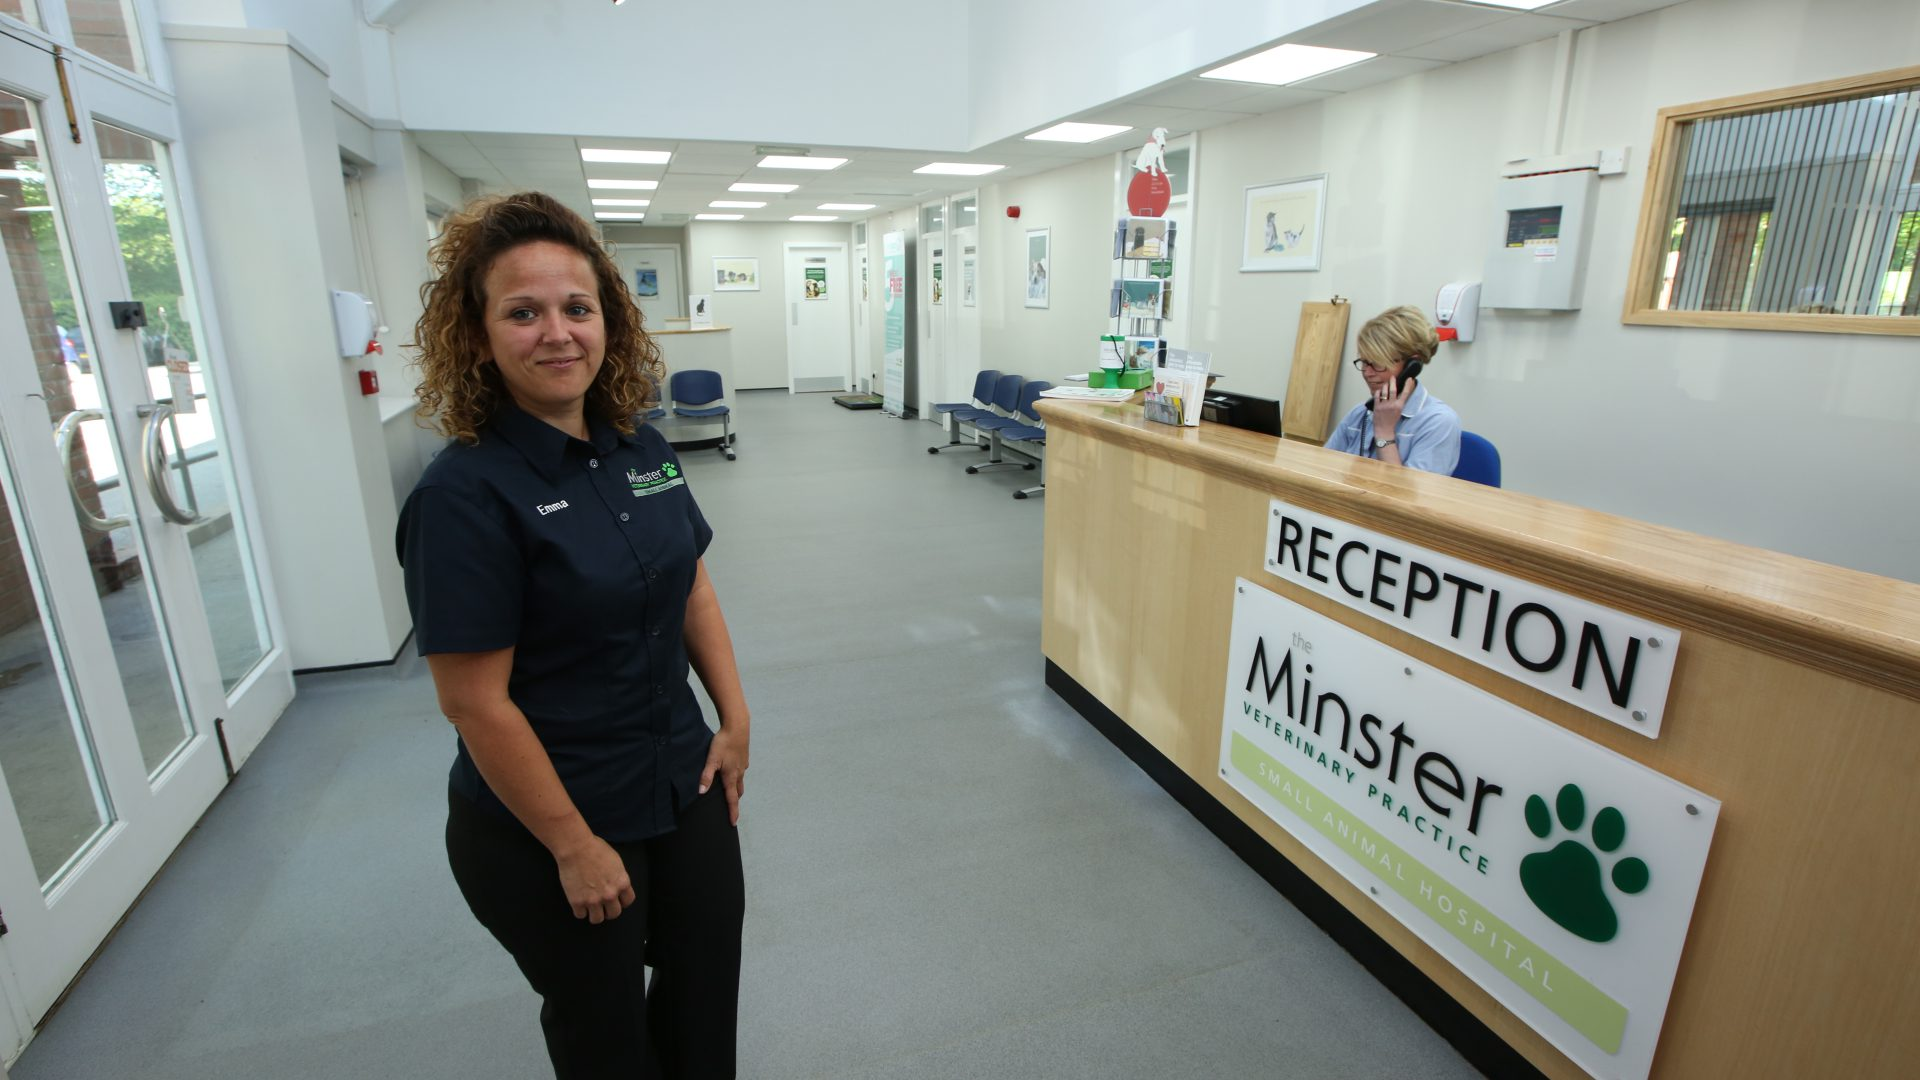 Emma is Darling of veterinary nurse profession after promotion to Practice Manager